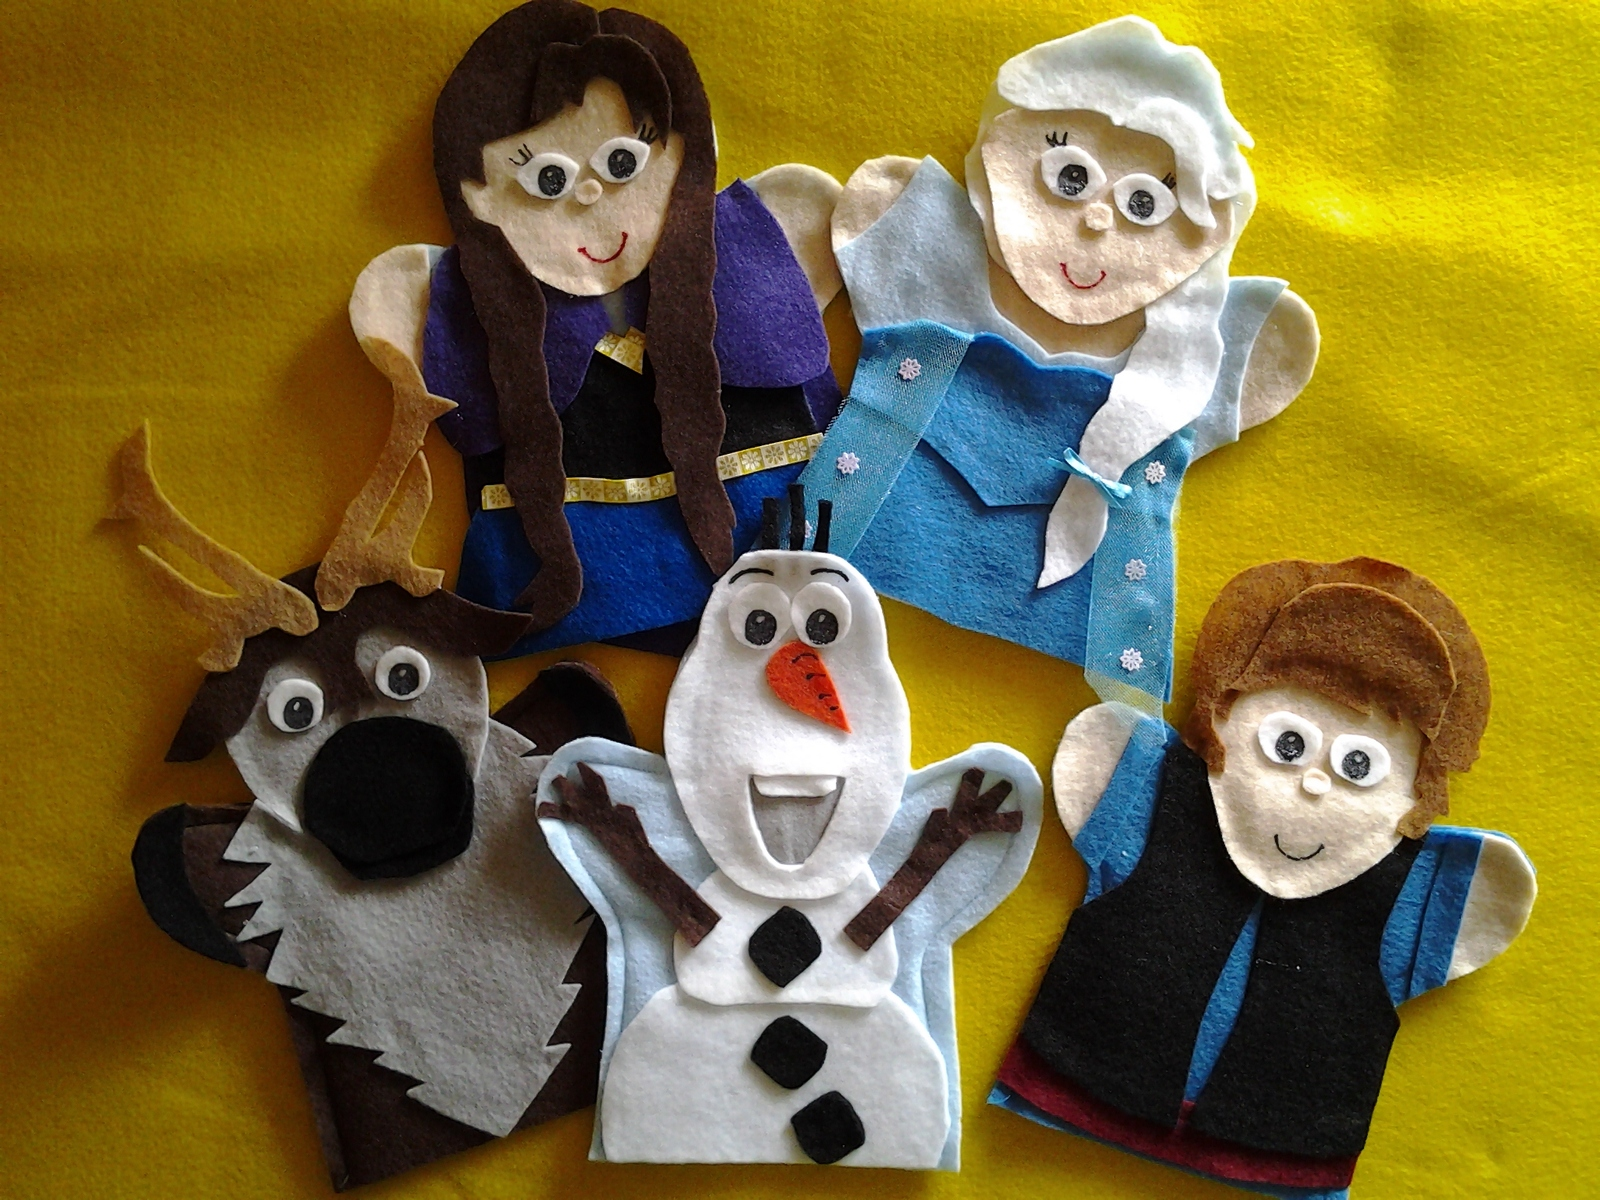 Frozen felt hand Puppets Anna, Elsa, Olaf, Kristoff and Sven